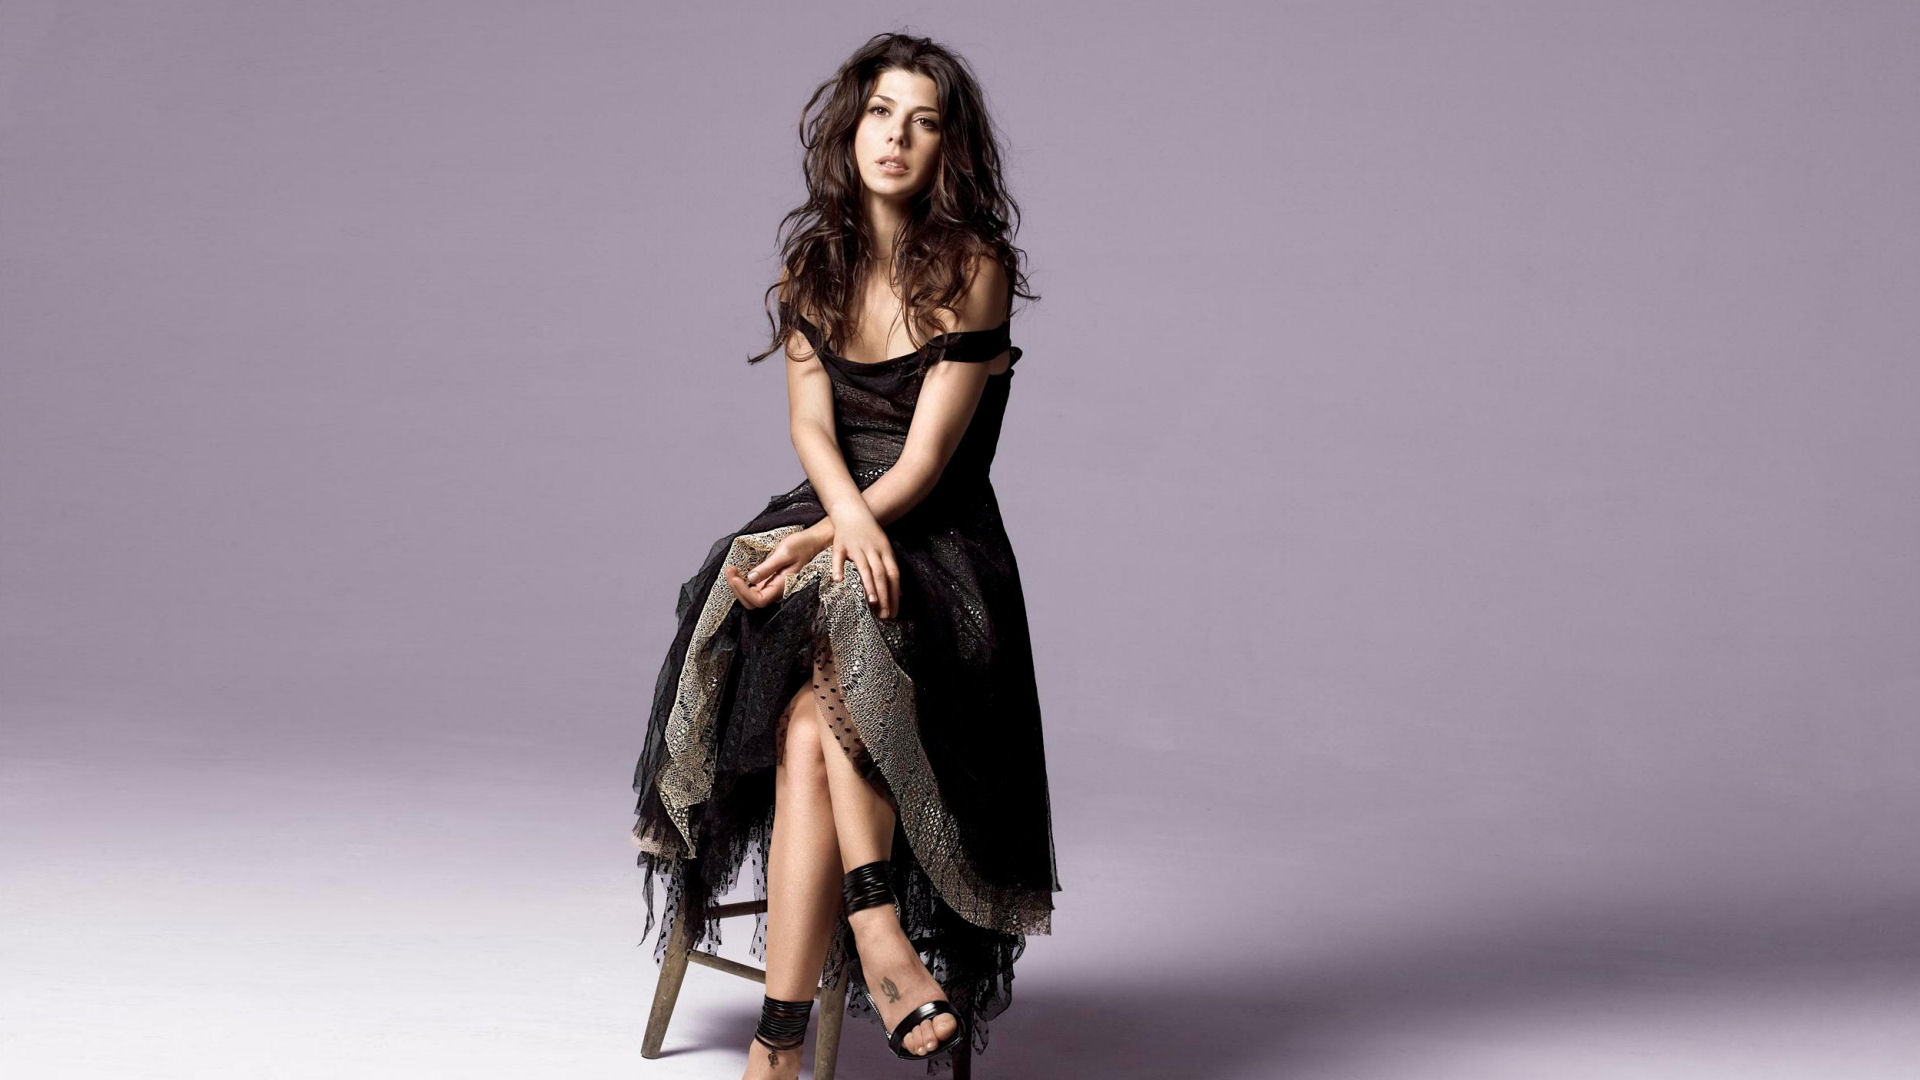 Pictures Of Marisa Tomei